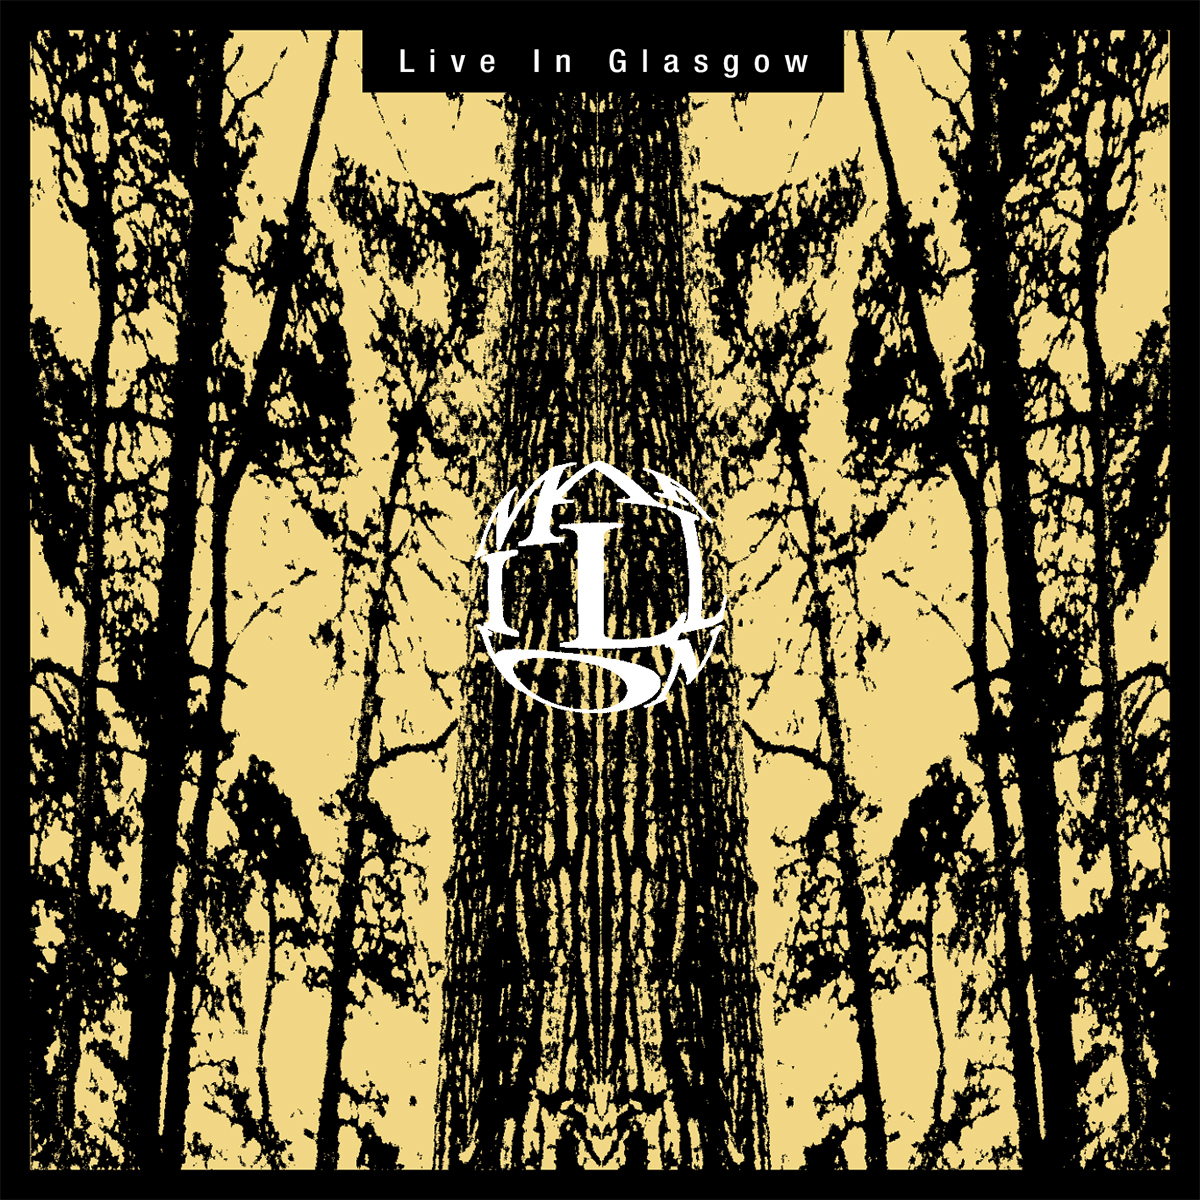 LIVE IN GLASGOW 256 KBPS ALBUM DOWNLOAD